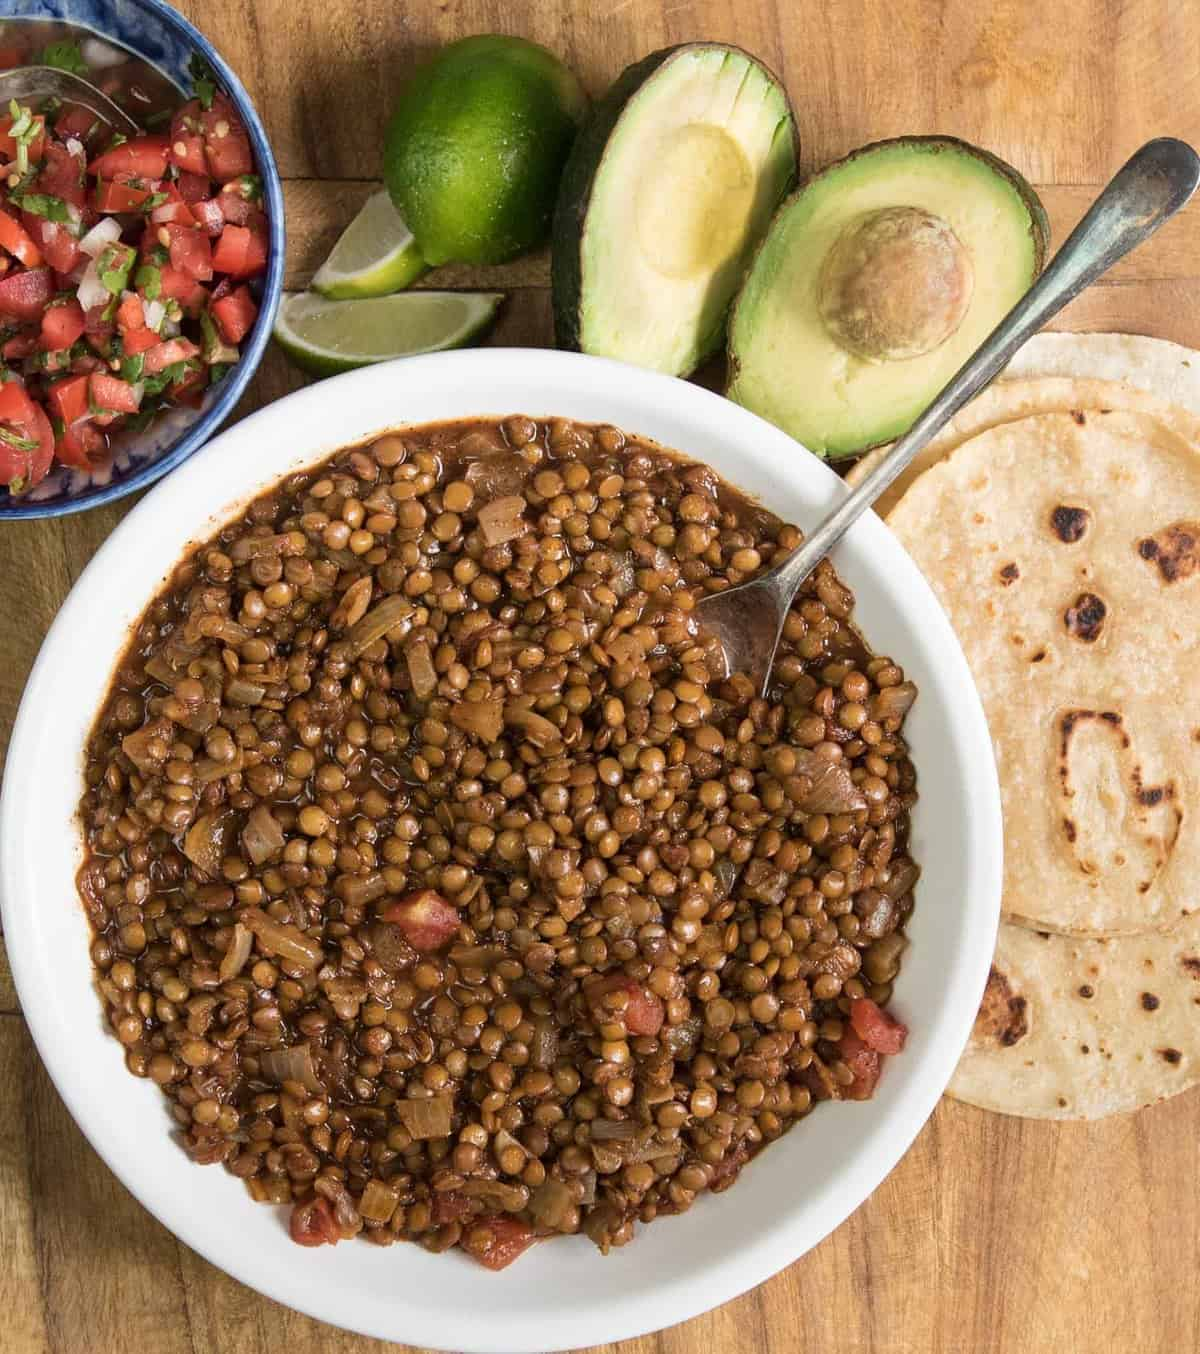 Quick, easy, and healthy lentil tacos are one of our favorite plant-based dinner ideas the whole family loves.